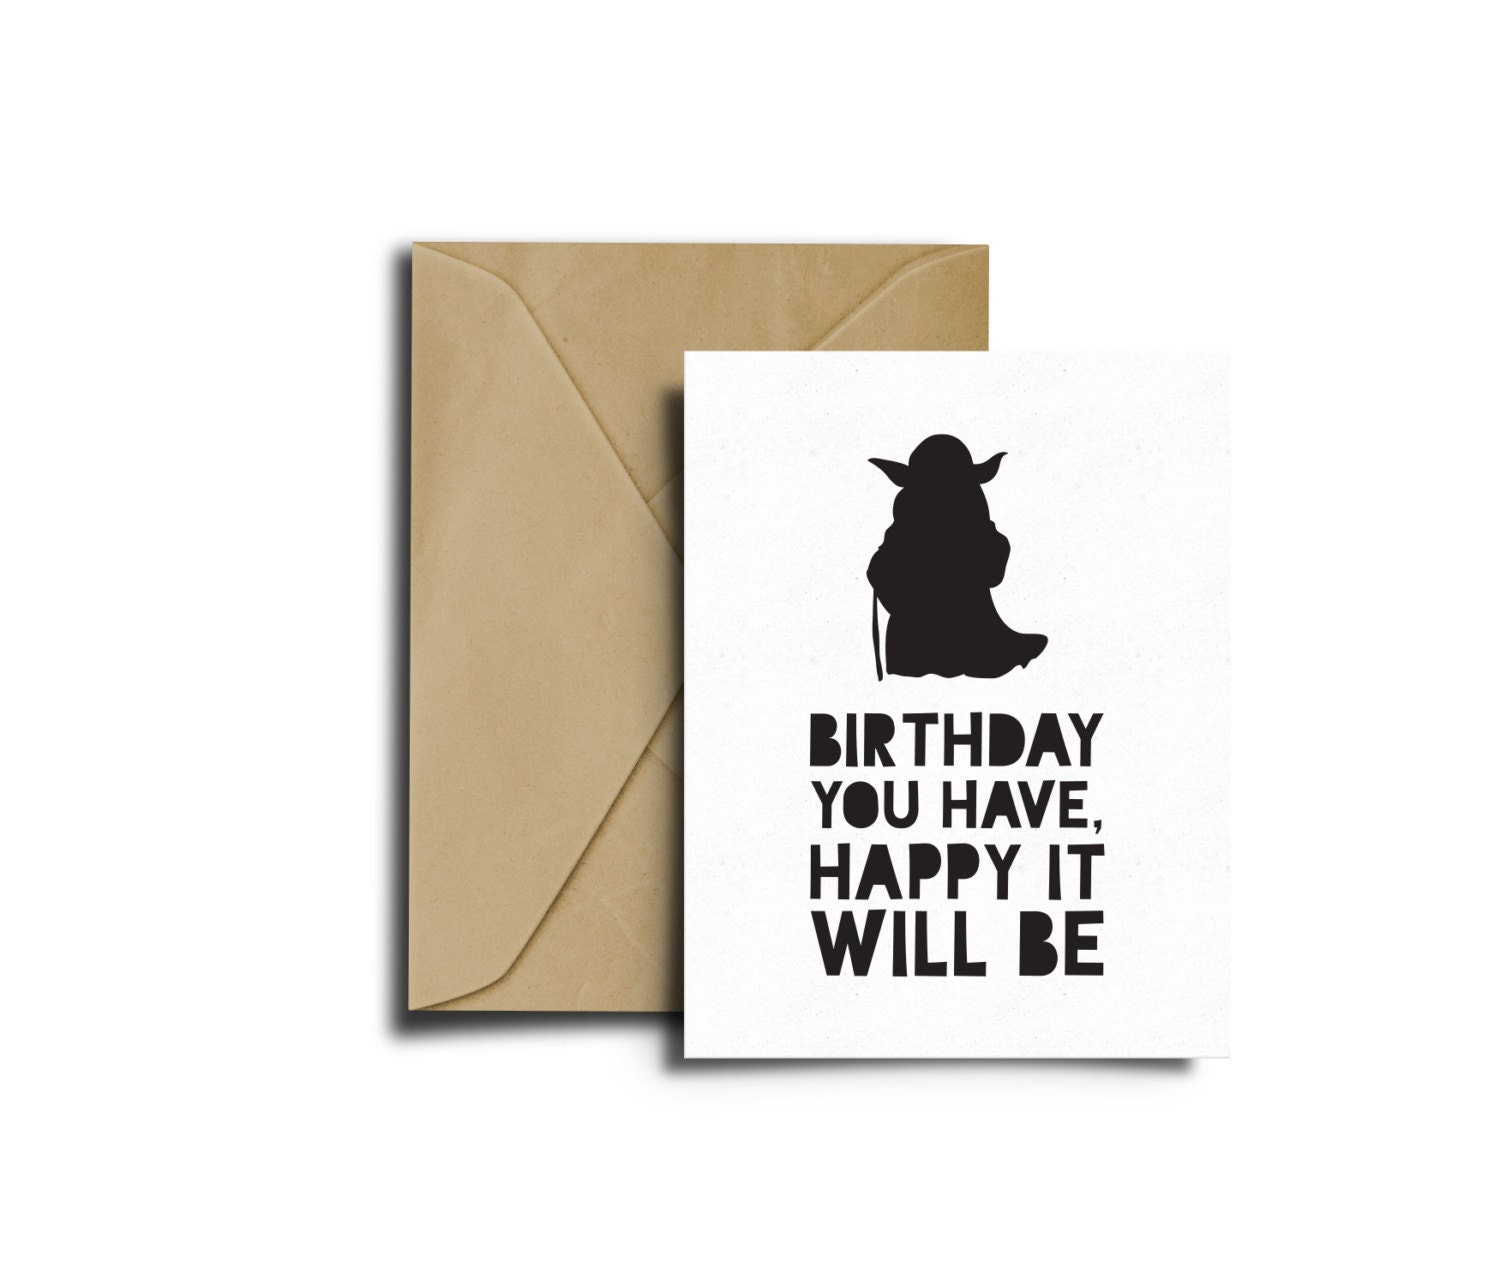 Star wars card – Star Wars Birthday Card